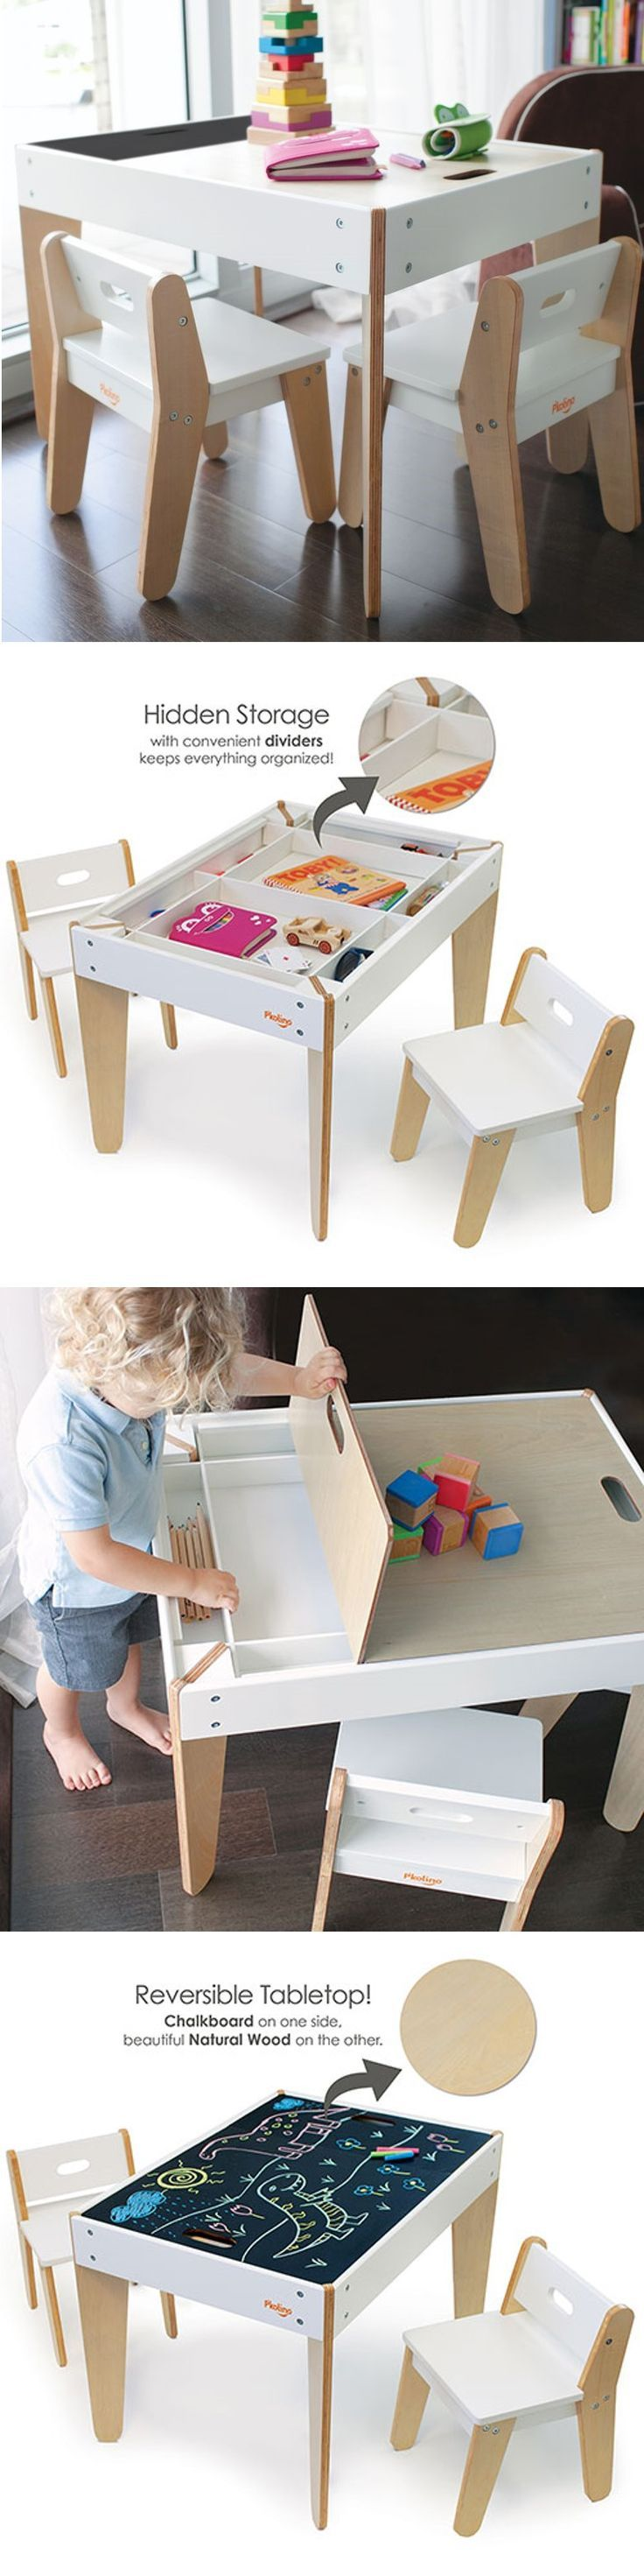 Pu0027kolino Little Modern Childrenu0027s Table With Reversible Top And Built In  Storage Compartment.